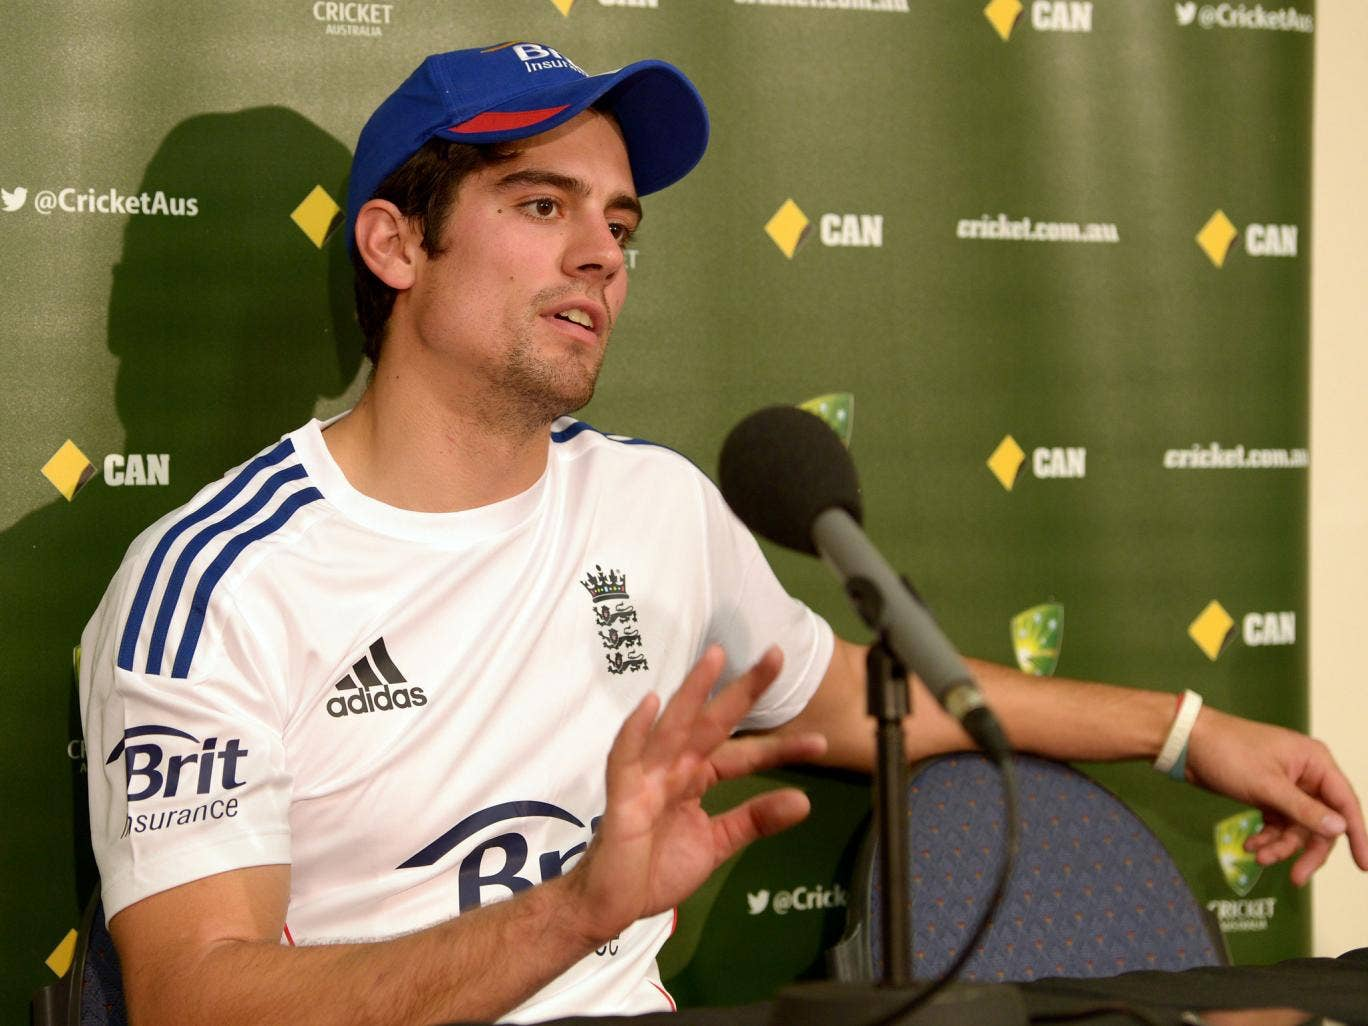 England Test cricket team captain Alastair Cook speaks during the official arrival media conference